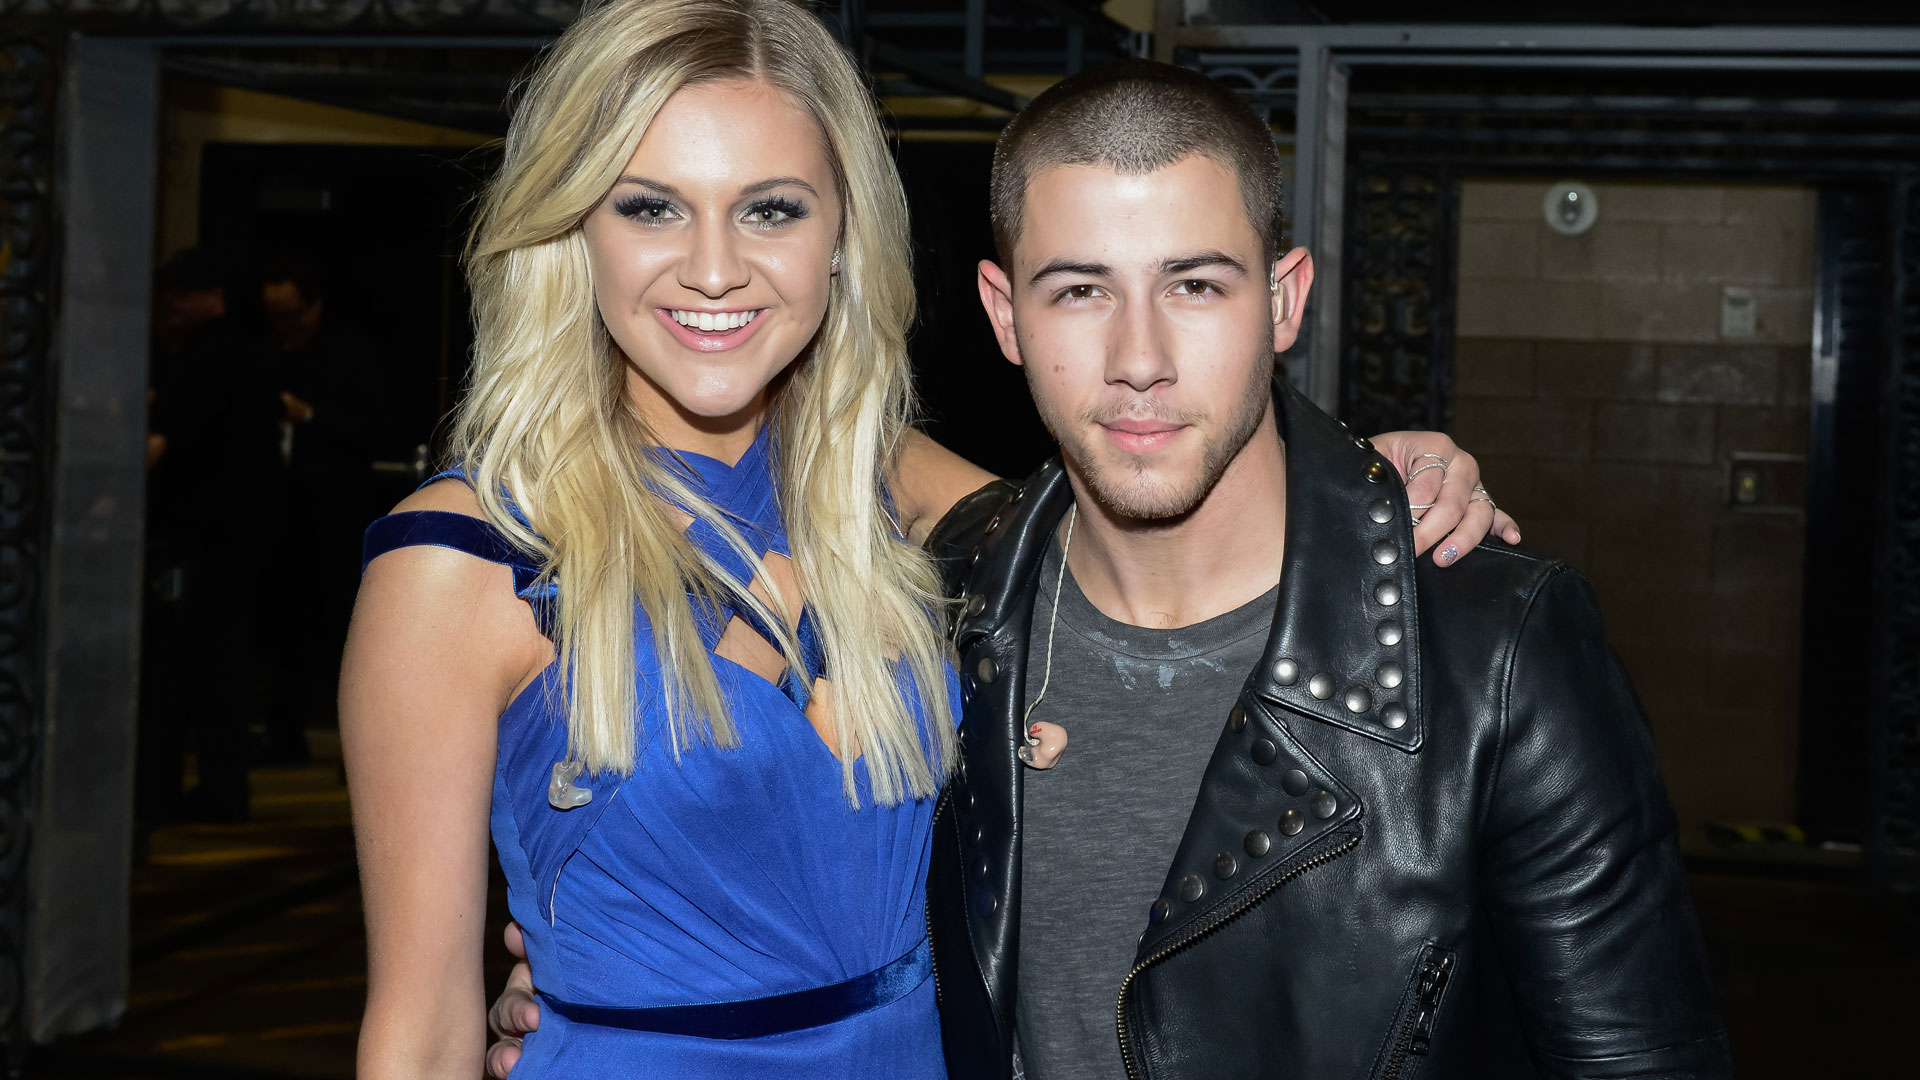 Fresh off the stage from their ACM duet, Kelsea Ballerini and Nick Jonas threw their arms around each other.